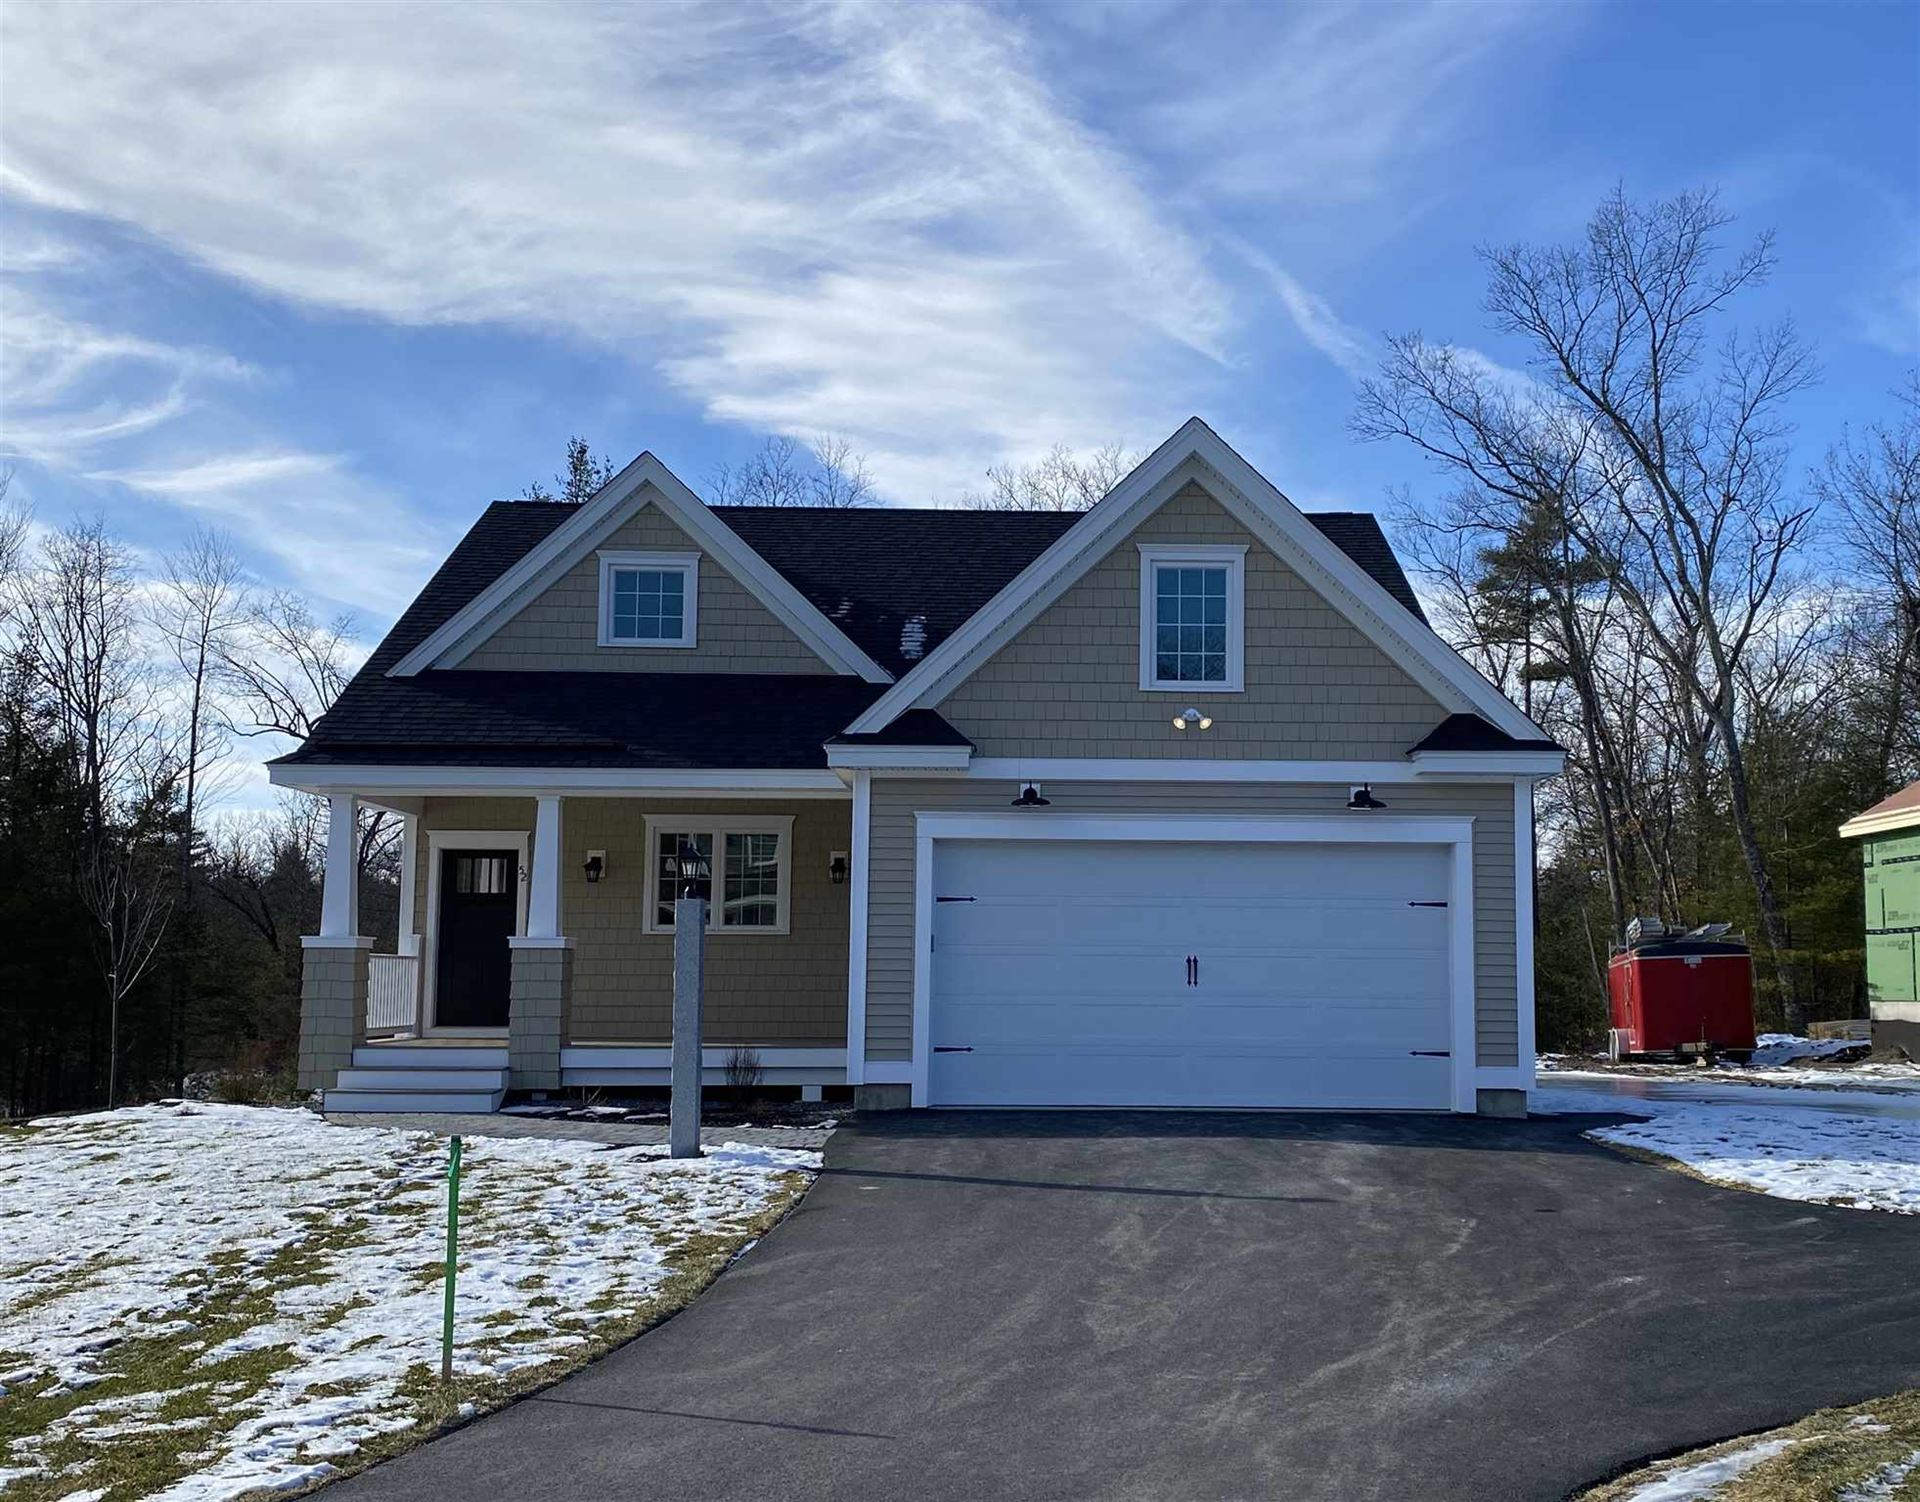 Lot 62 Lorden Commons #62, Londonderry, NH 03053 - MLS#: 4818444